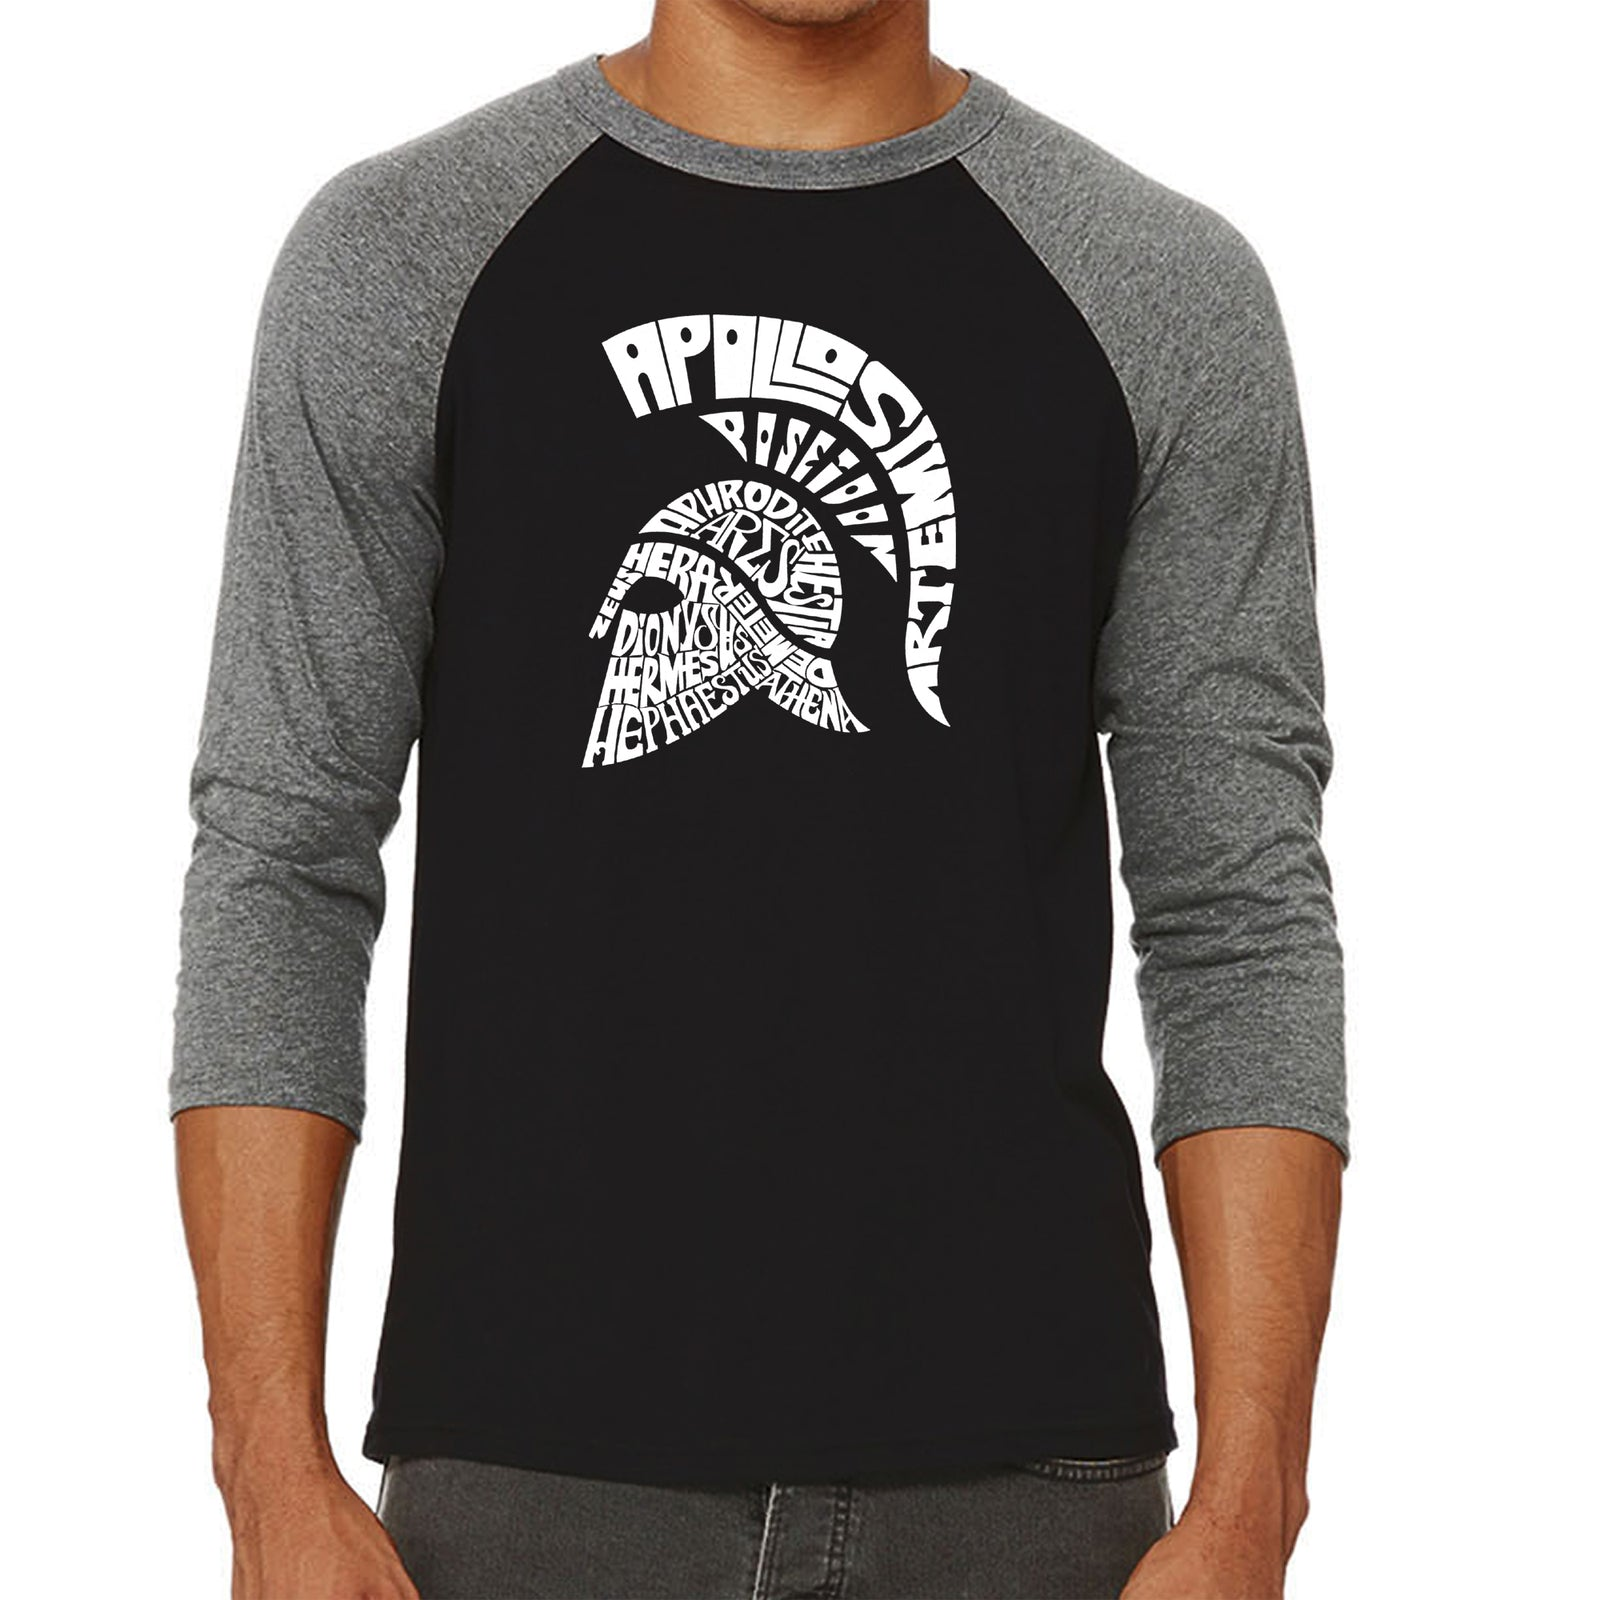 Men's Raglan Baseball Word Art T-shirt - SPARTAN